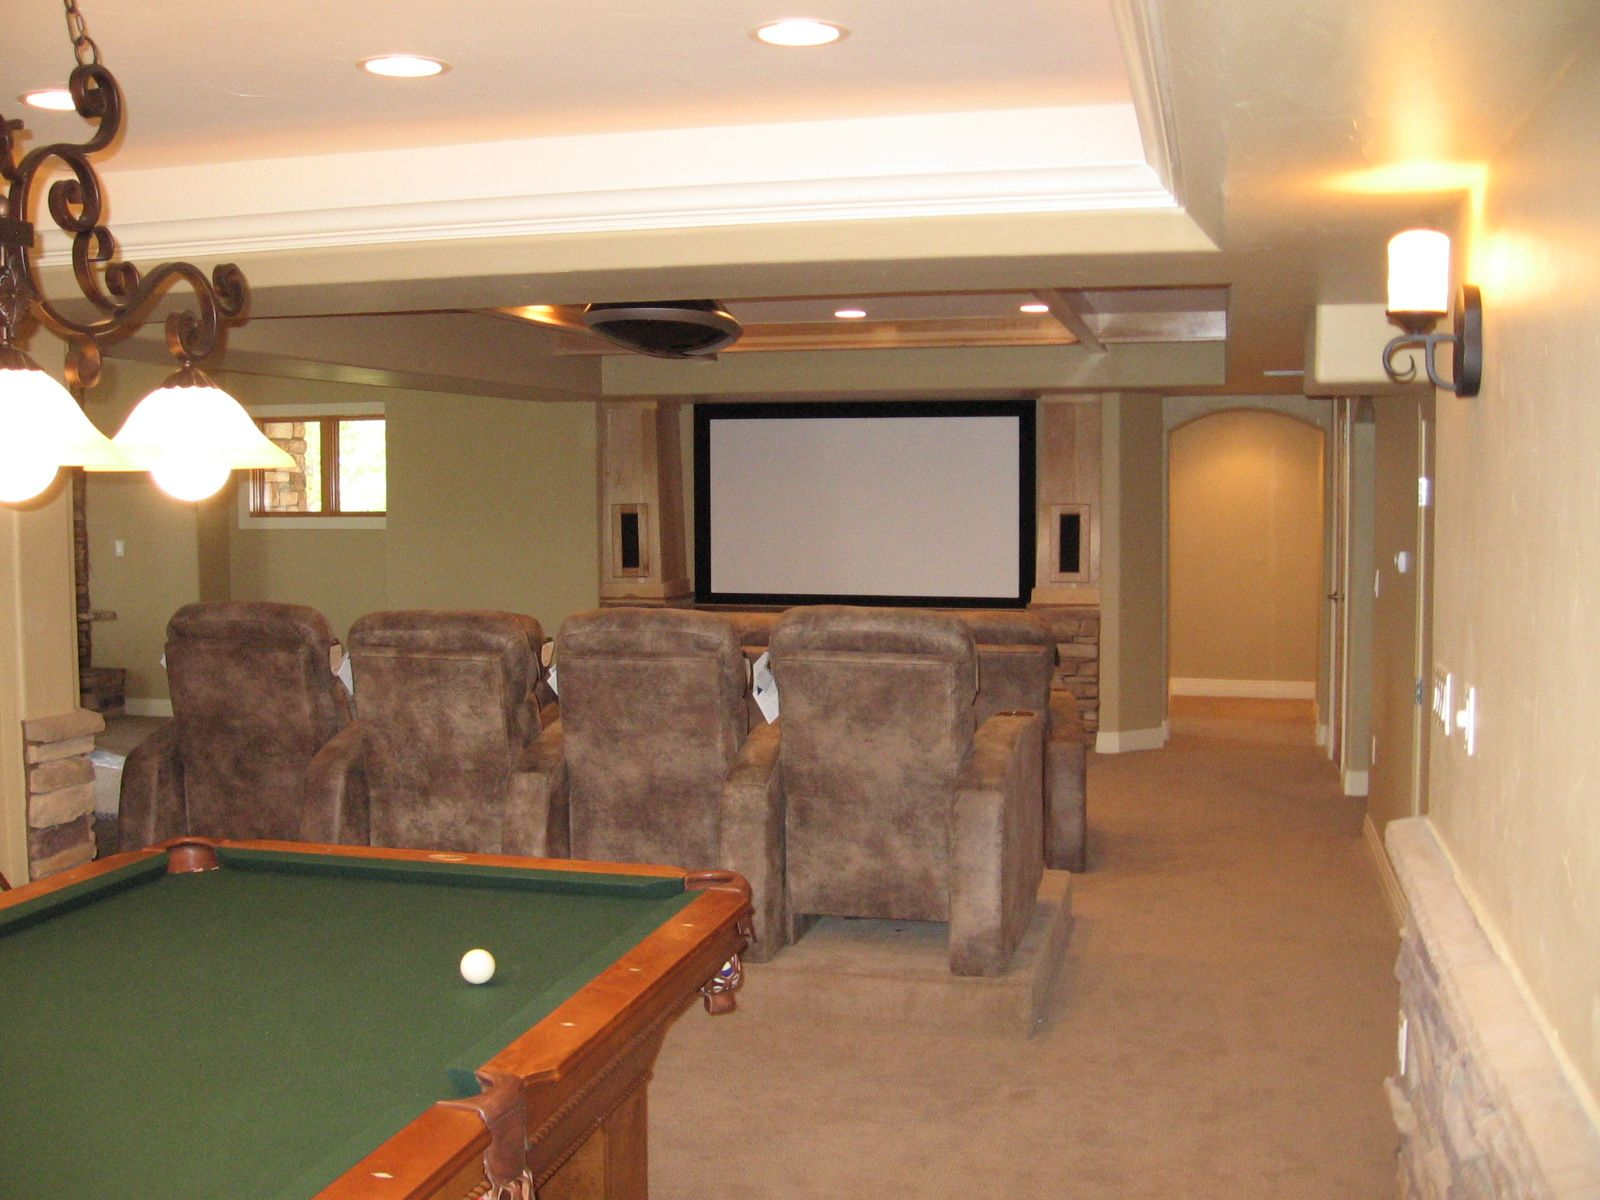 Finished Bathroom Ideas finished basement ideas | basement design, basement finishing